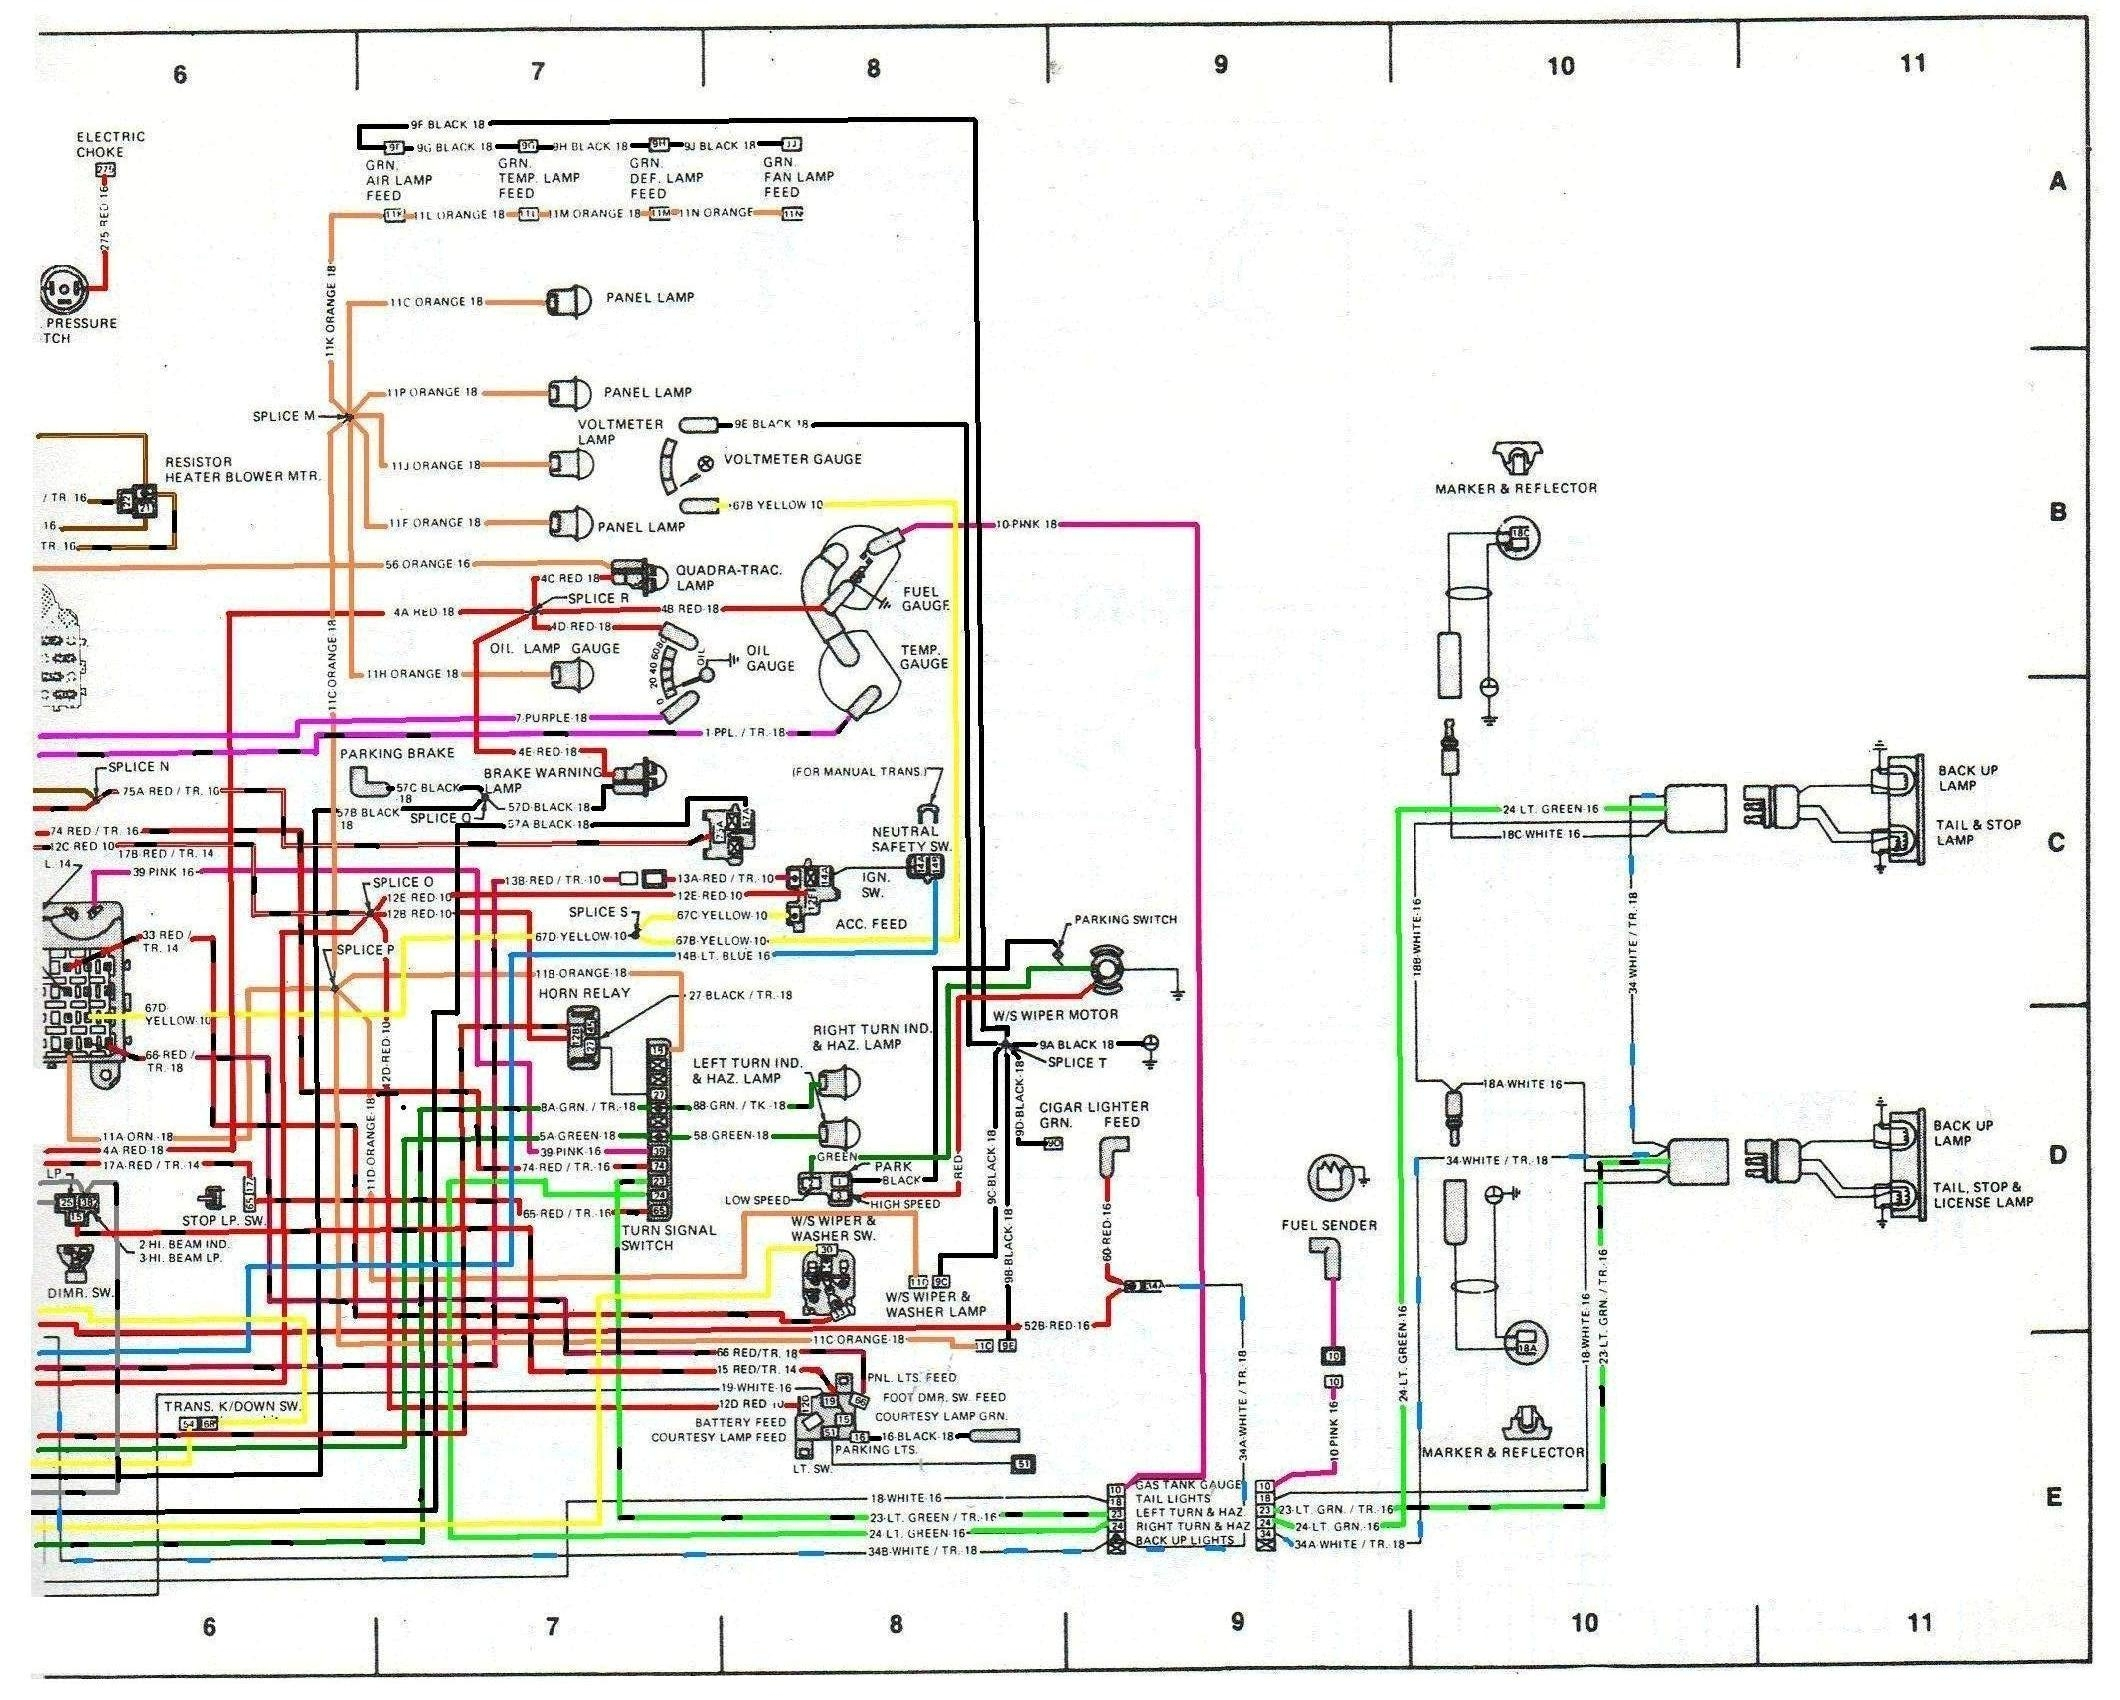 1975 jeep cj5 wiring diagram get free image about wiring diagram83 jeep cj7 wiring diagram get free image about wiring diagram 1975 jeep cj5 wiring diagram get free image about wiring diagram